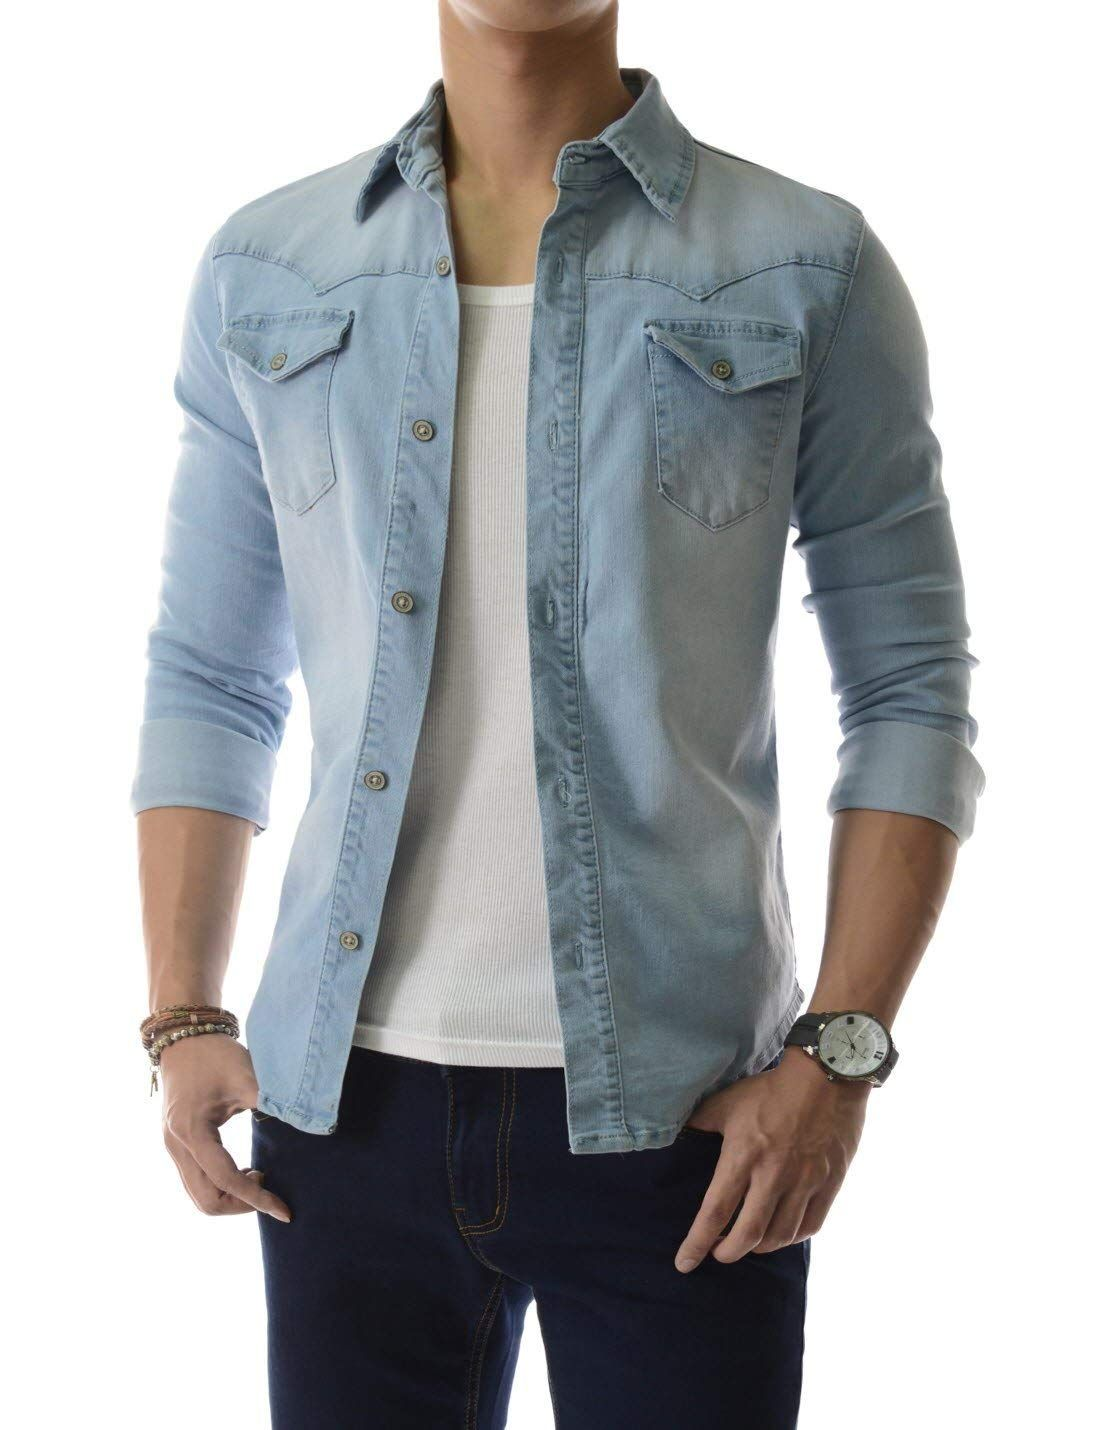 c635cd1d65 TheLees Slim Chest Two Pocket Vintage Washing Denim Long Sleeve Stretchy  Shirts